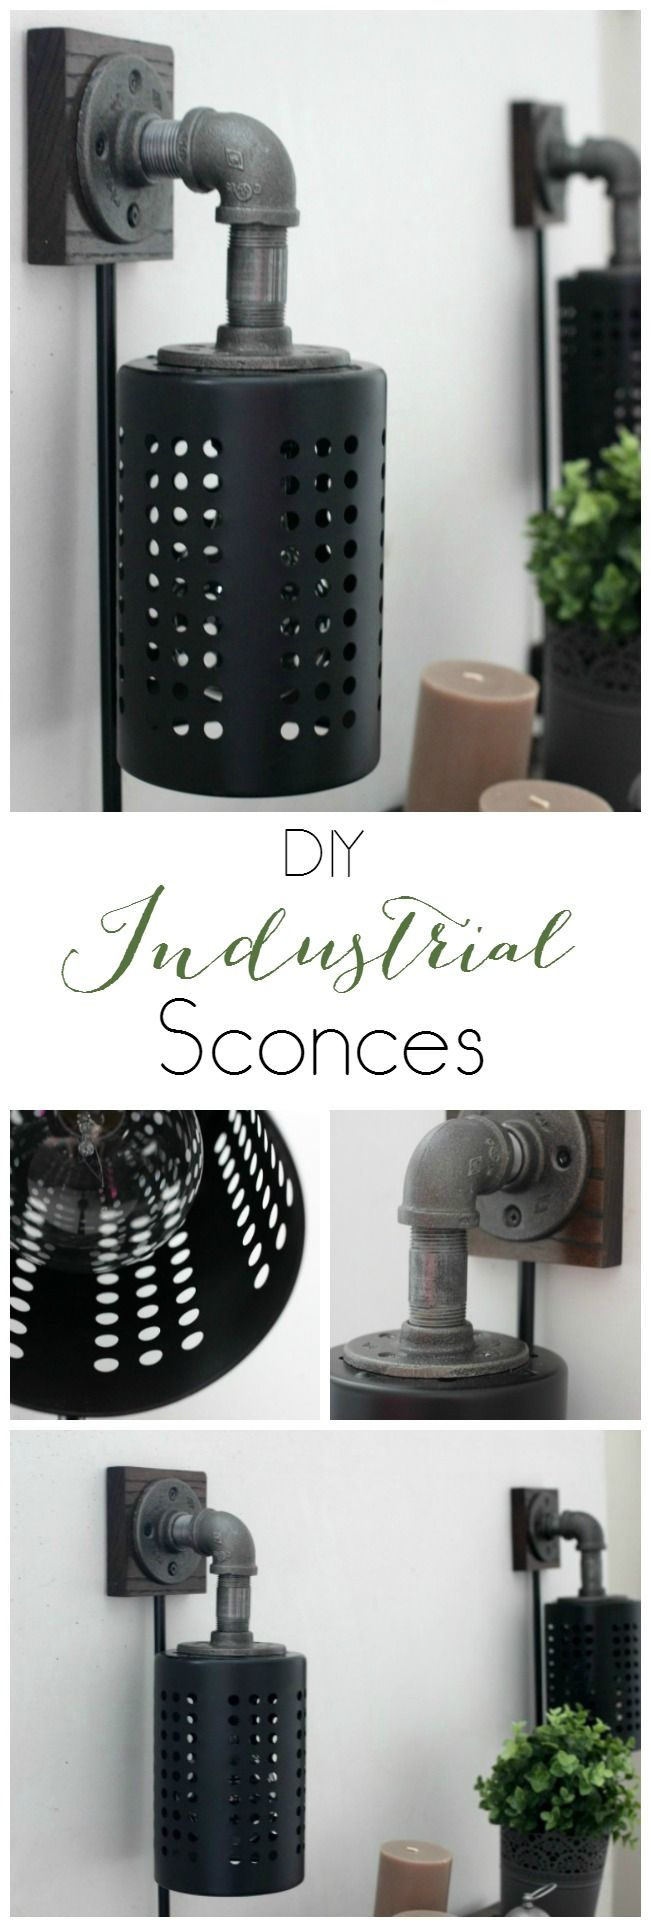 DIY Industrial Sconces! Love this DIY Lighting. Would fit perfectly into any industrial or rustic decor!